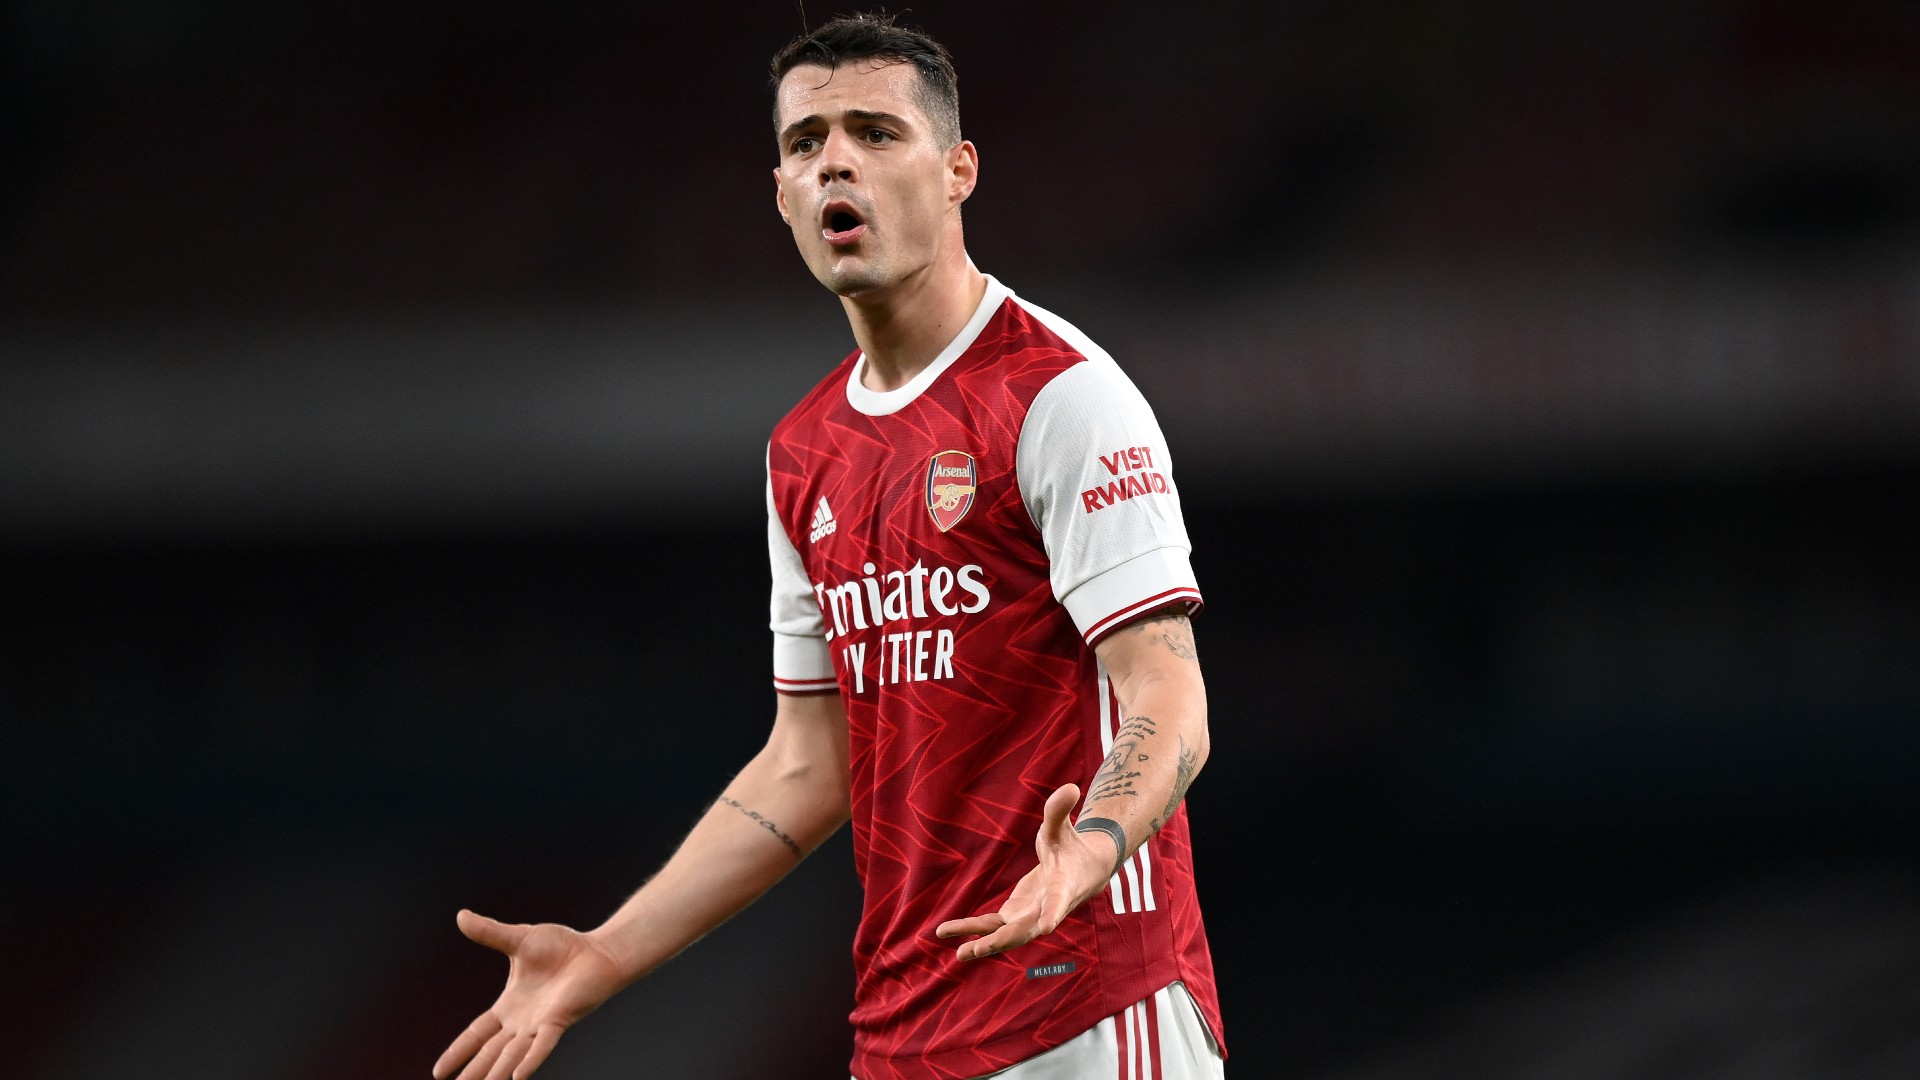 Transfer news and rumours LIVE: Arsenal reverse course on Xhaka